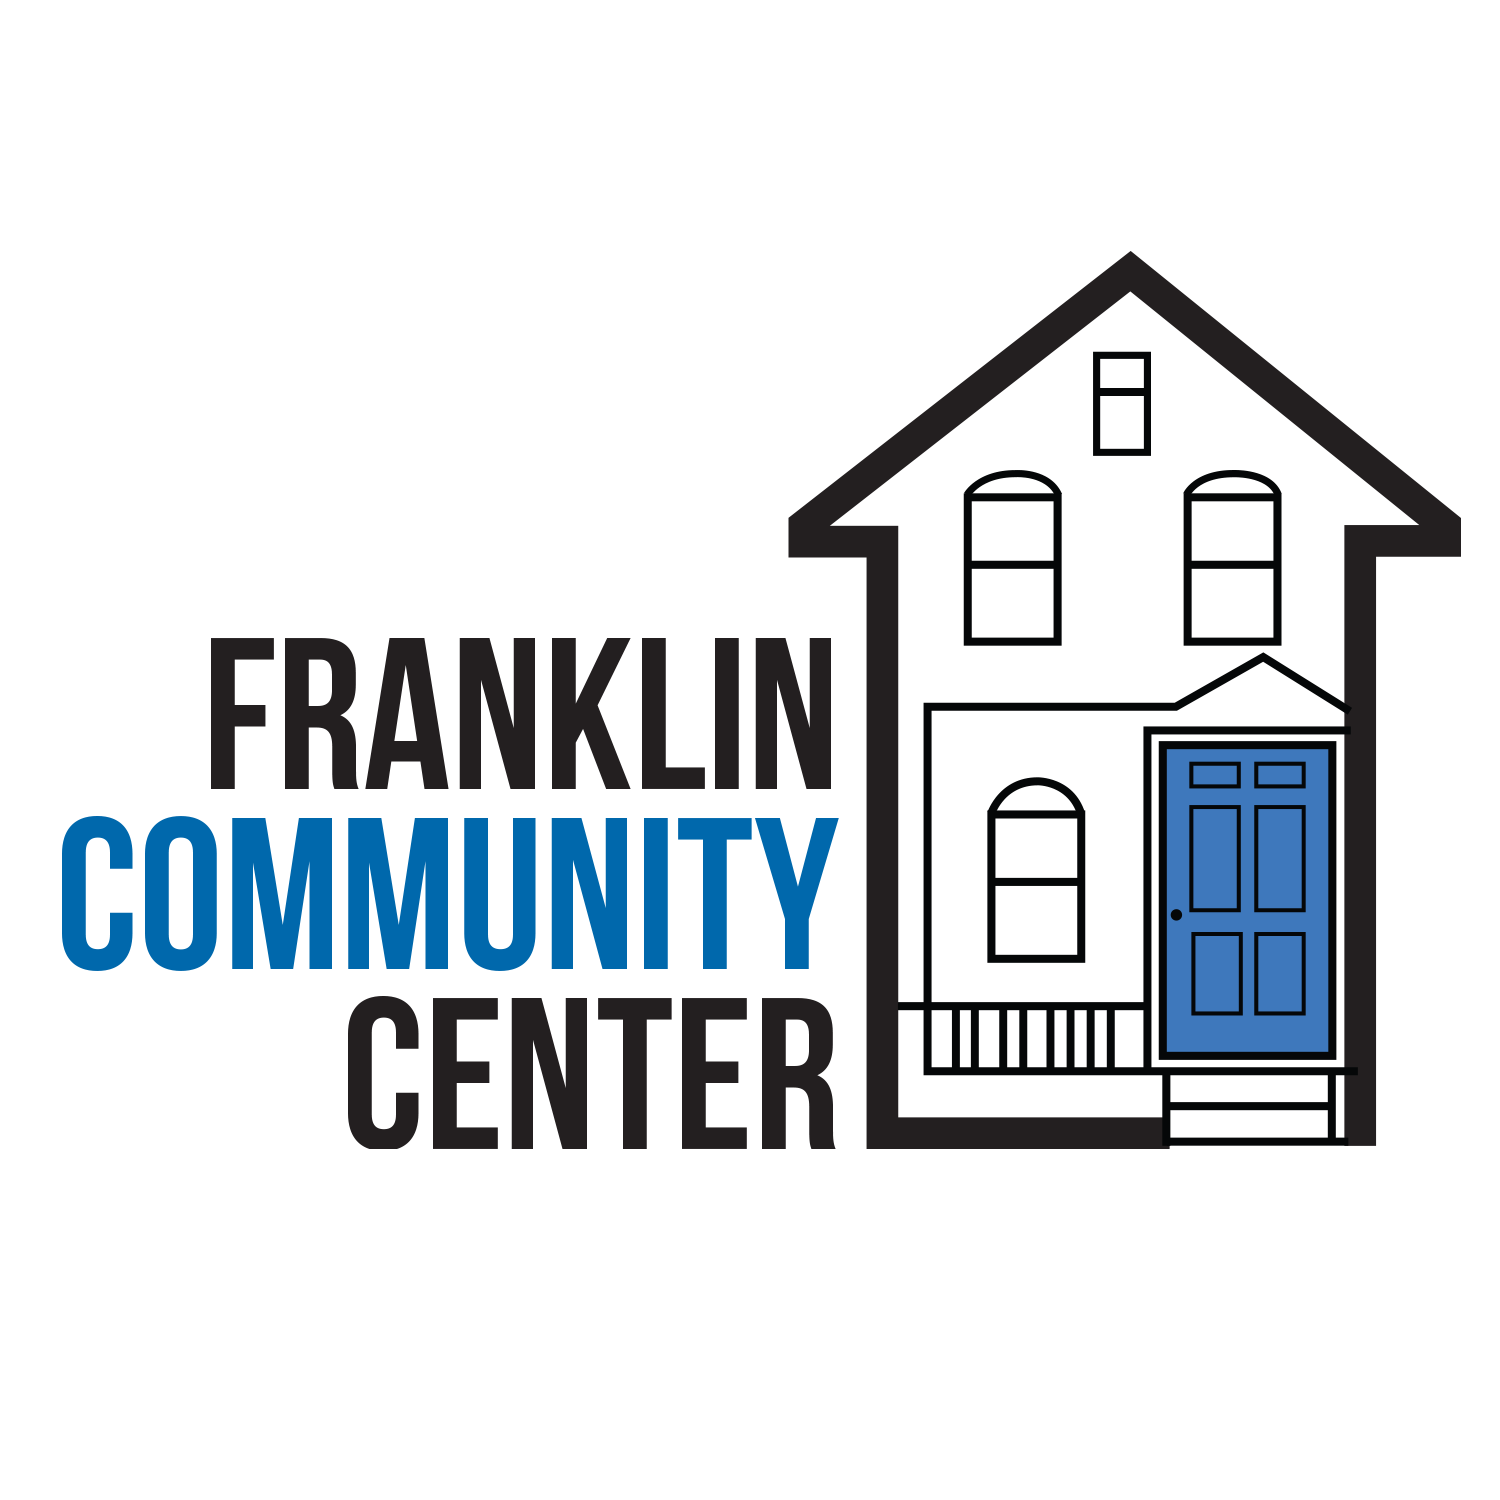 Franklin Community Center